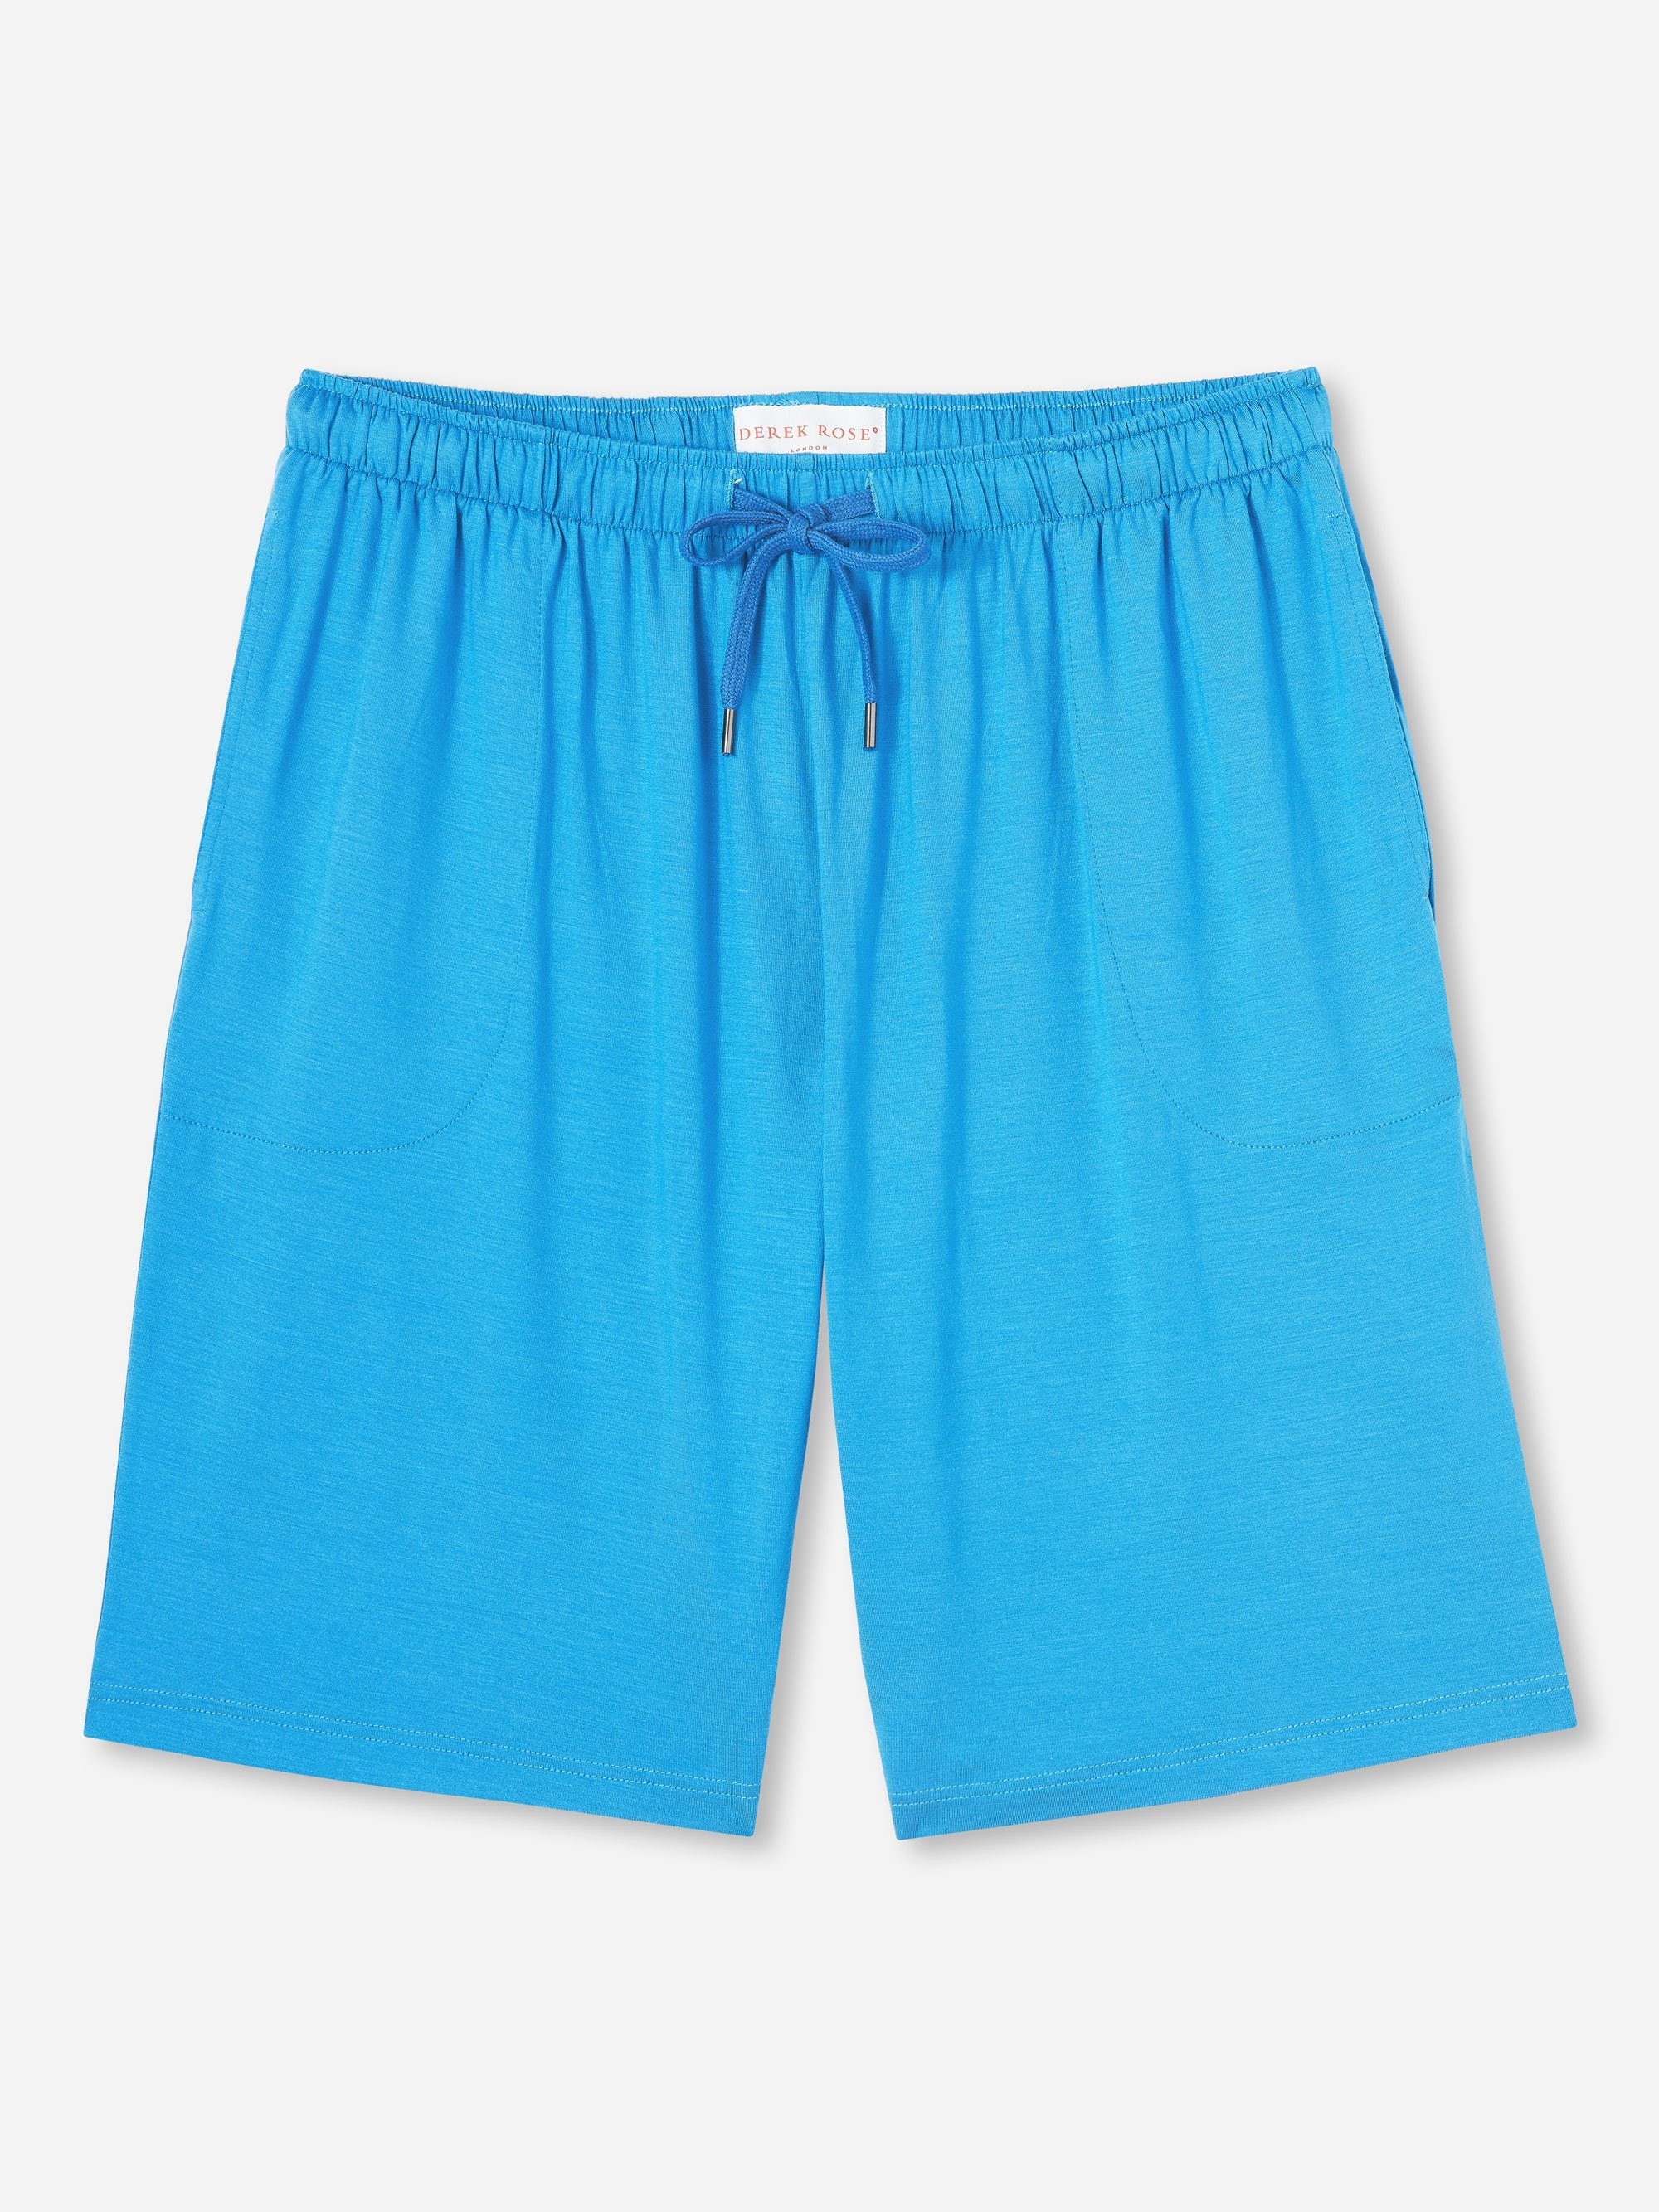 Men's Jersey Shorts Basel 6 Micro Modal Stretch Blue